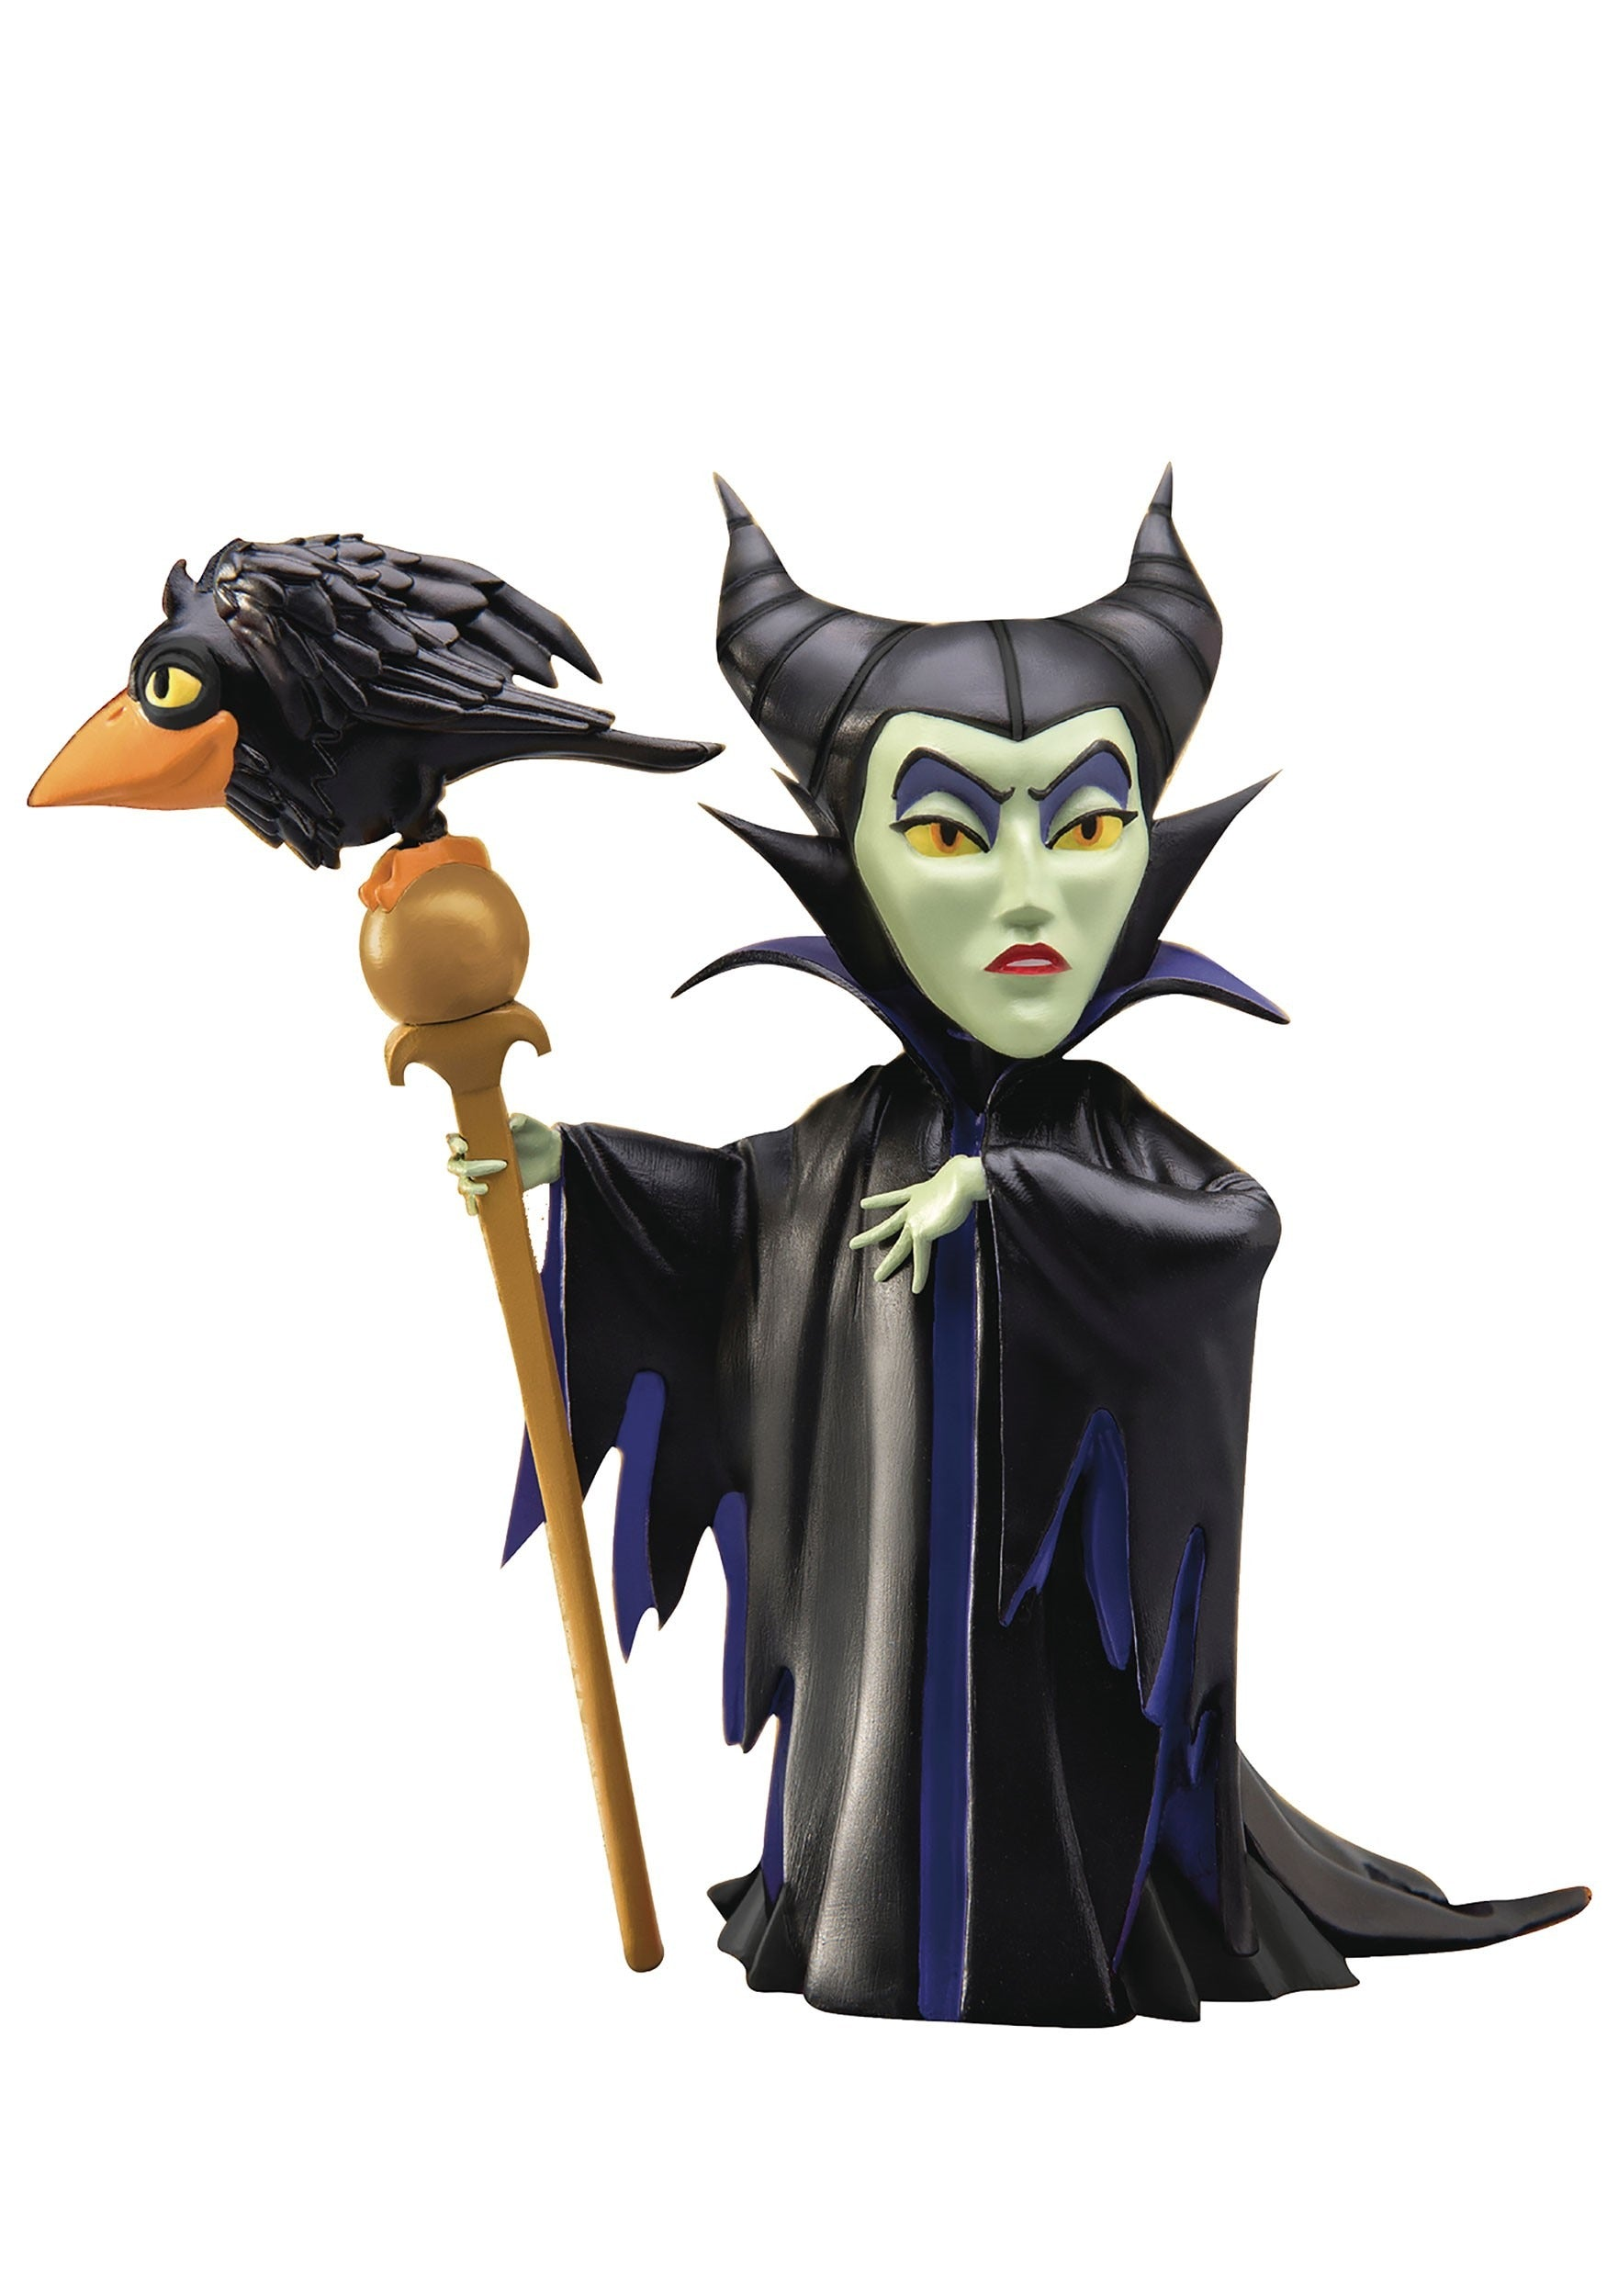 Sleeping Beauty Disney Villains Maleficent Figure - Previews Exclusive